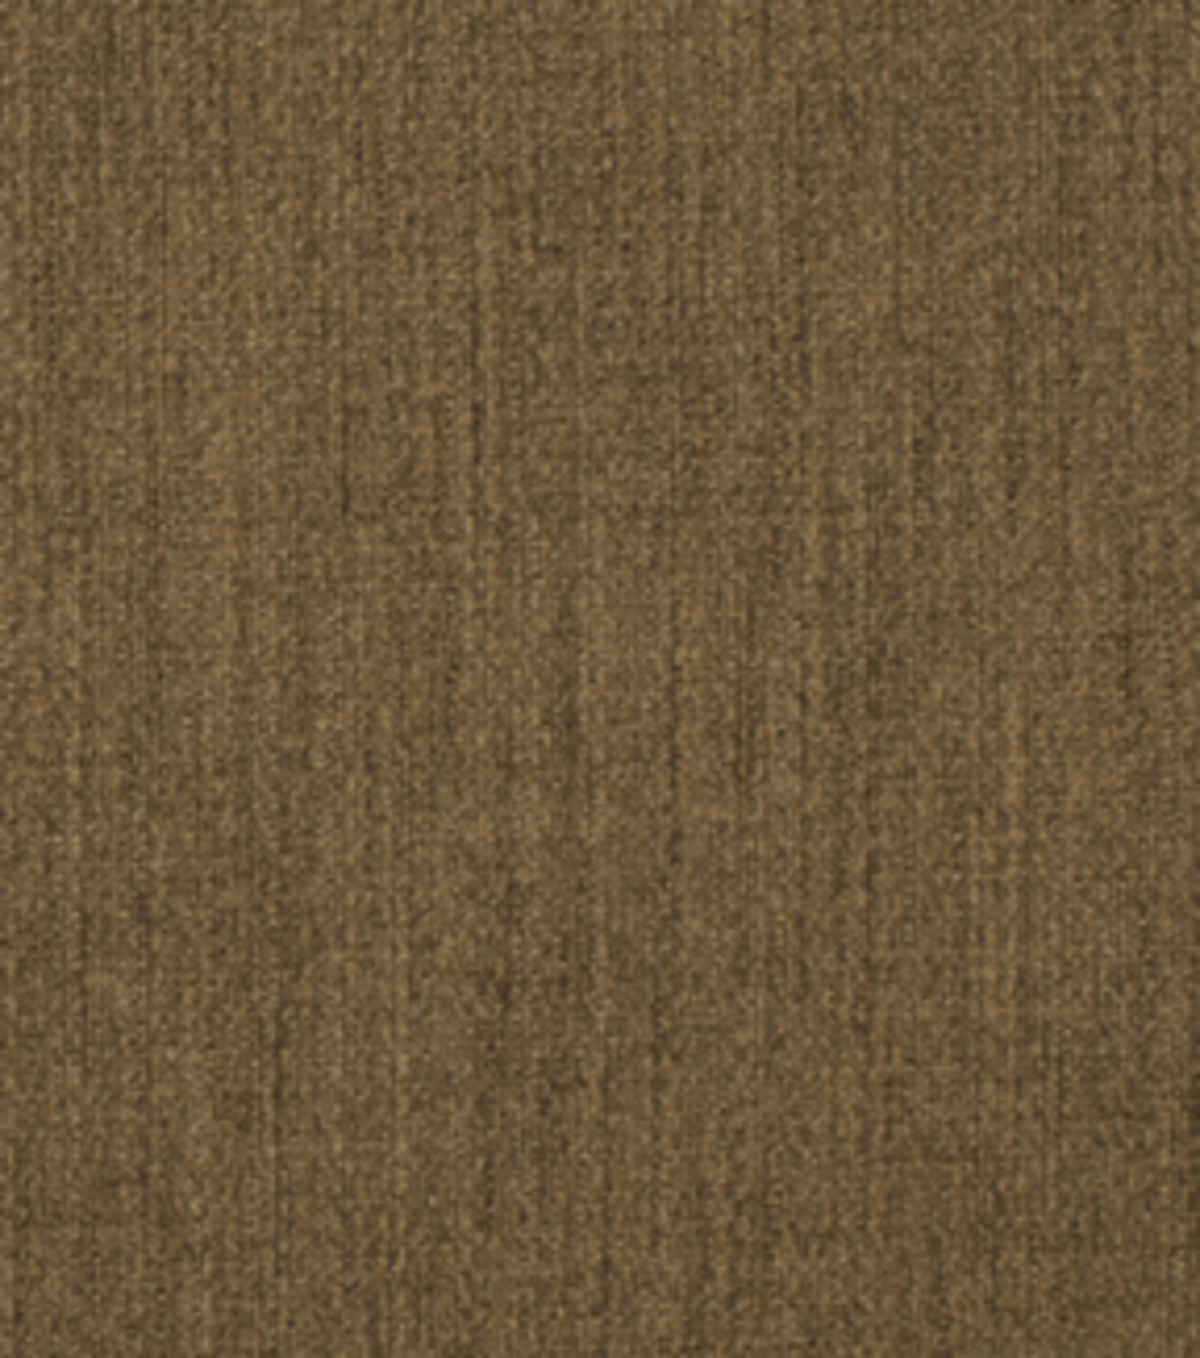 Home Decor 8\u0022x8\u0022 Fabric Swatch-Eaton Square Kramer Chocolate